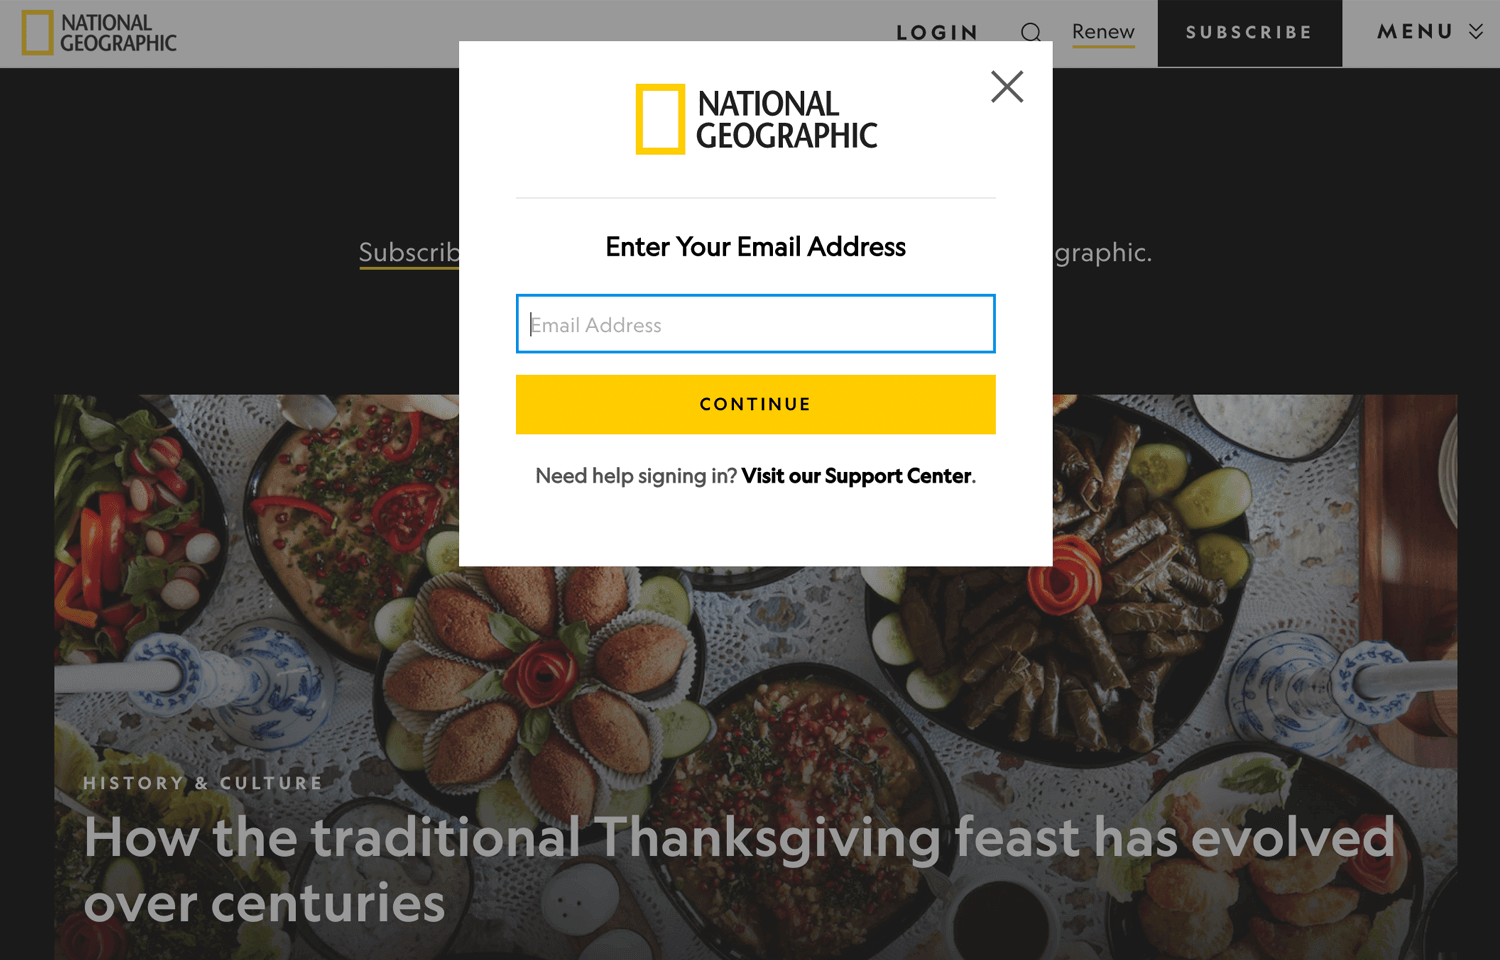 national-geographic-login-form